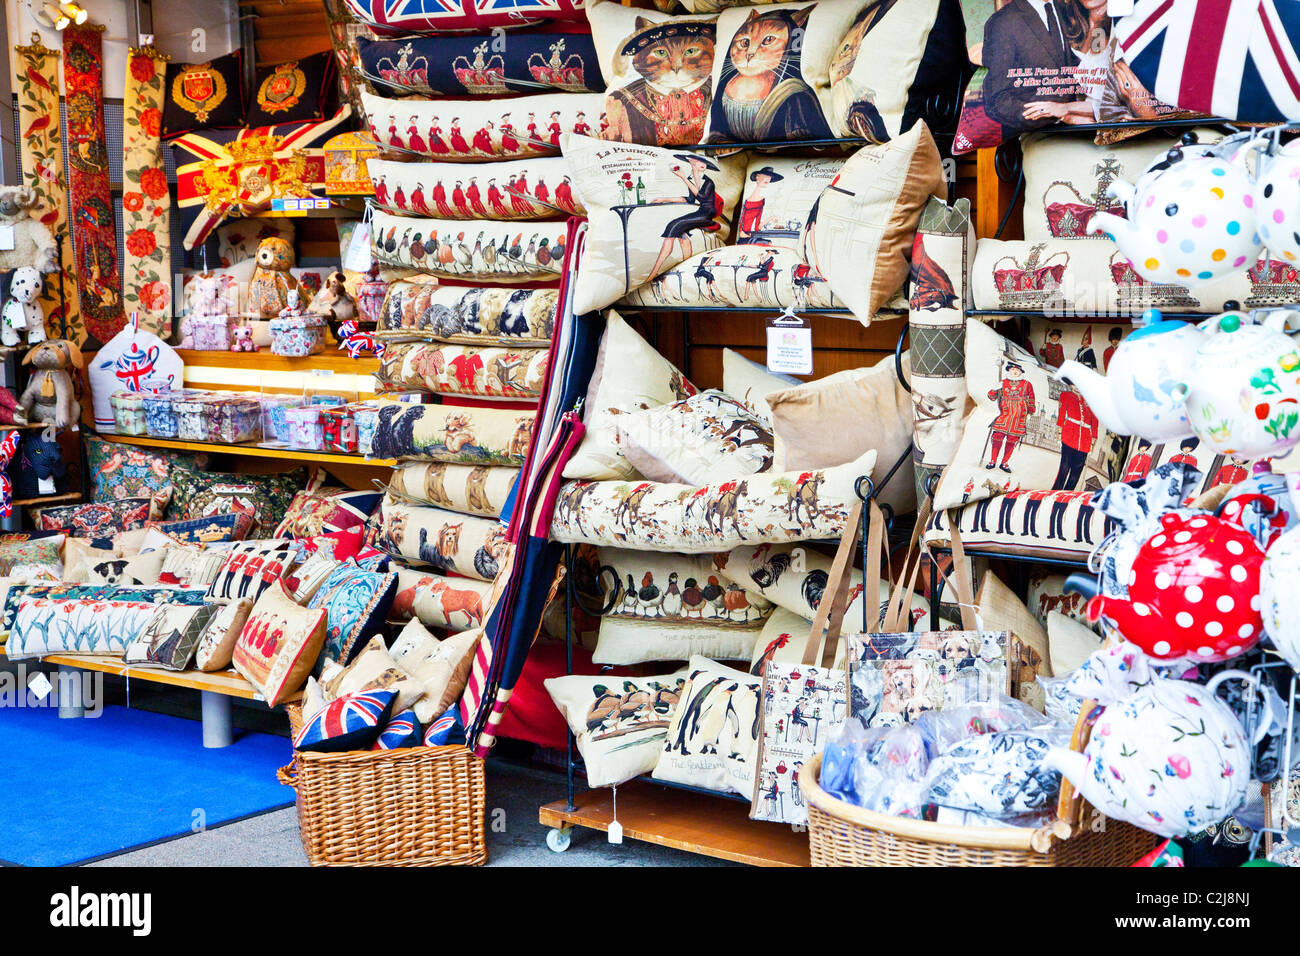 Display of souvenirs,memorabilia and gifts of England on an indoor market stall in Windsor, Berkshire, England, - Stock Image